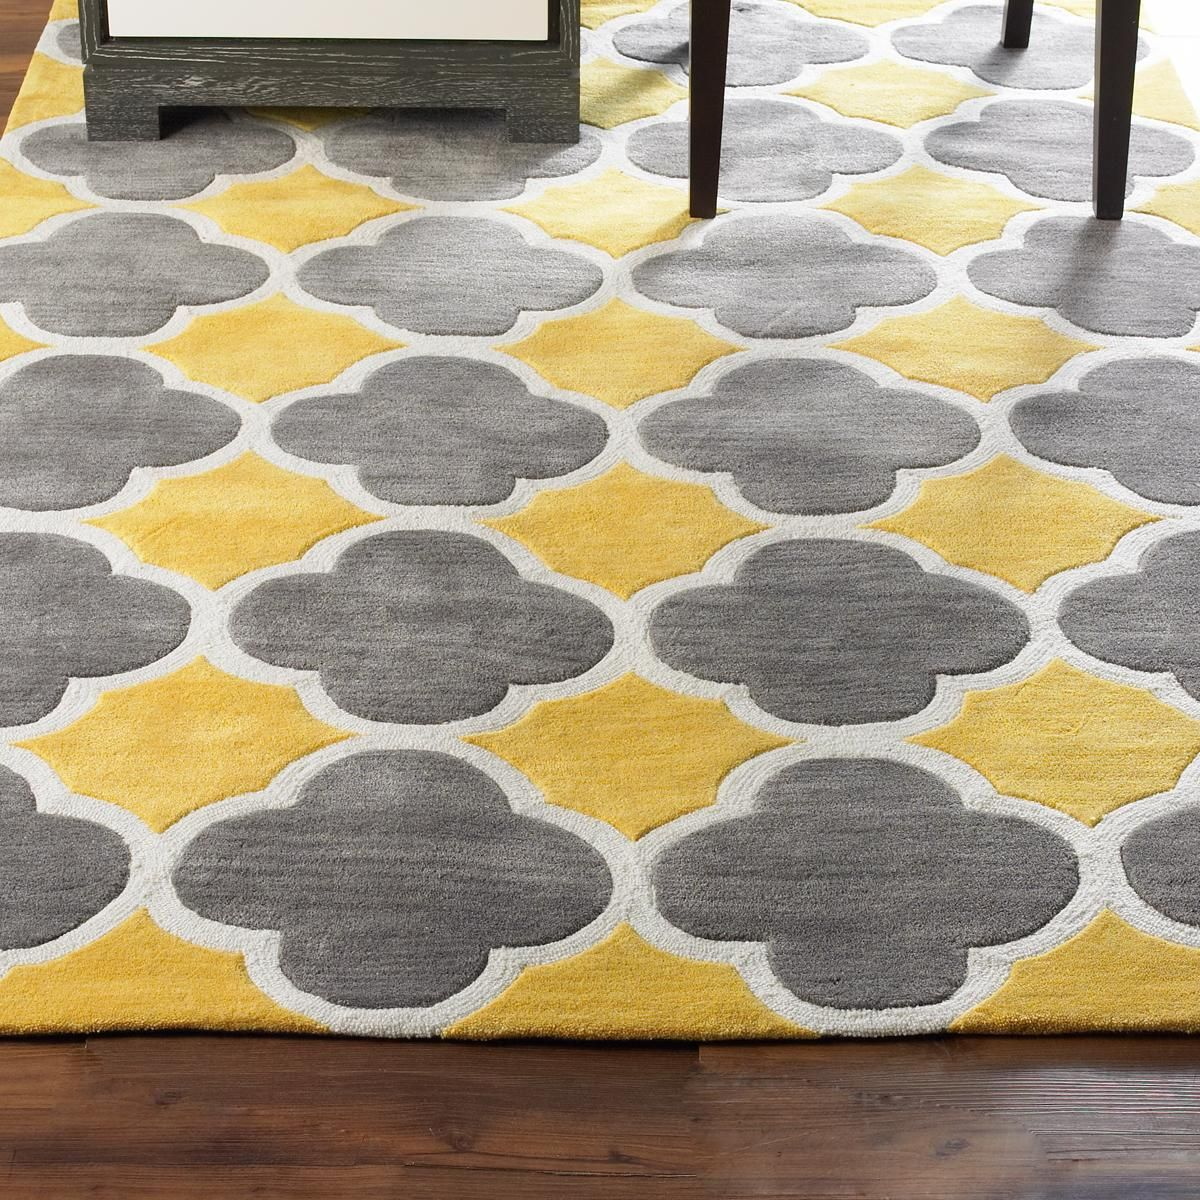 Cloverleaf Quatrefoil Rug | Foyer & Entrance Way Ideas | Pinterest ...